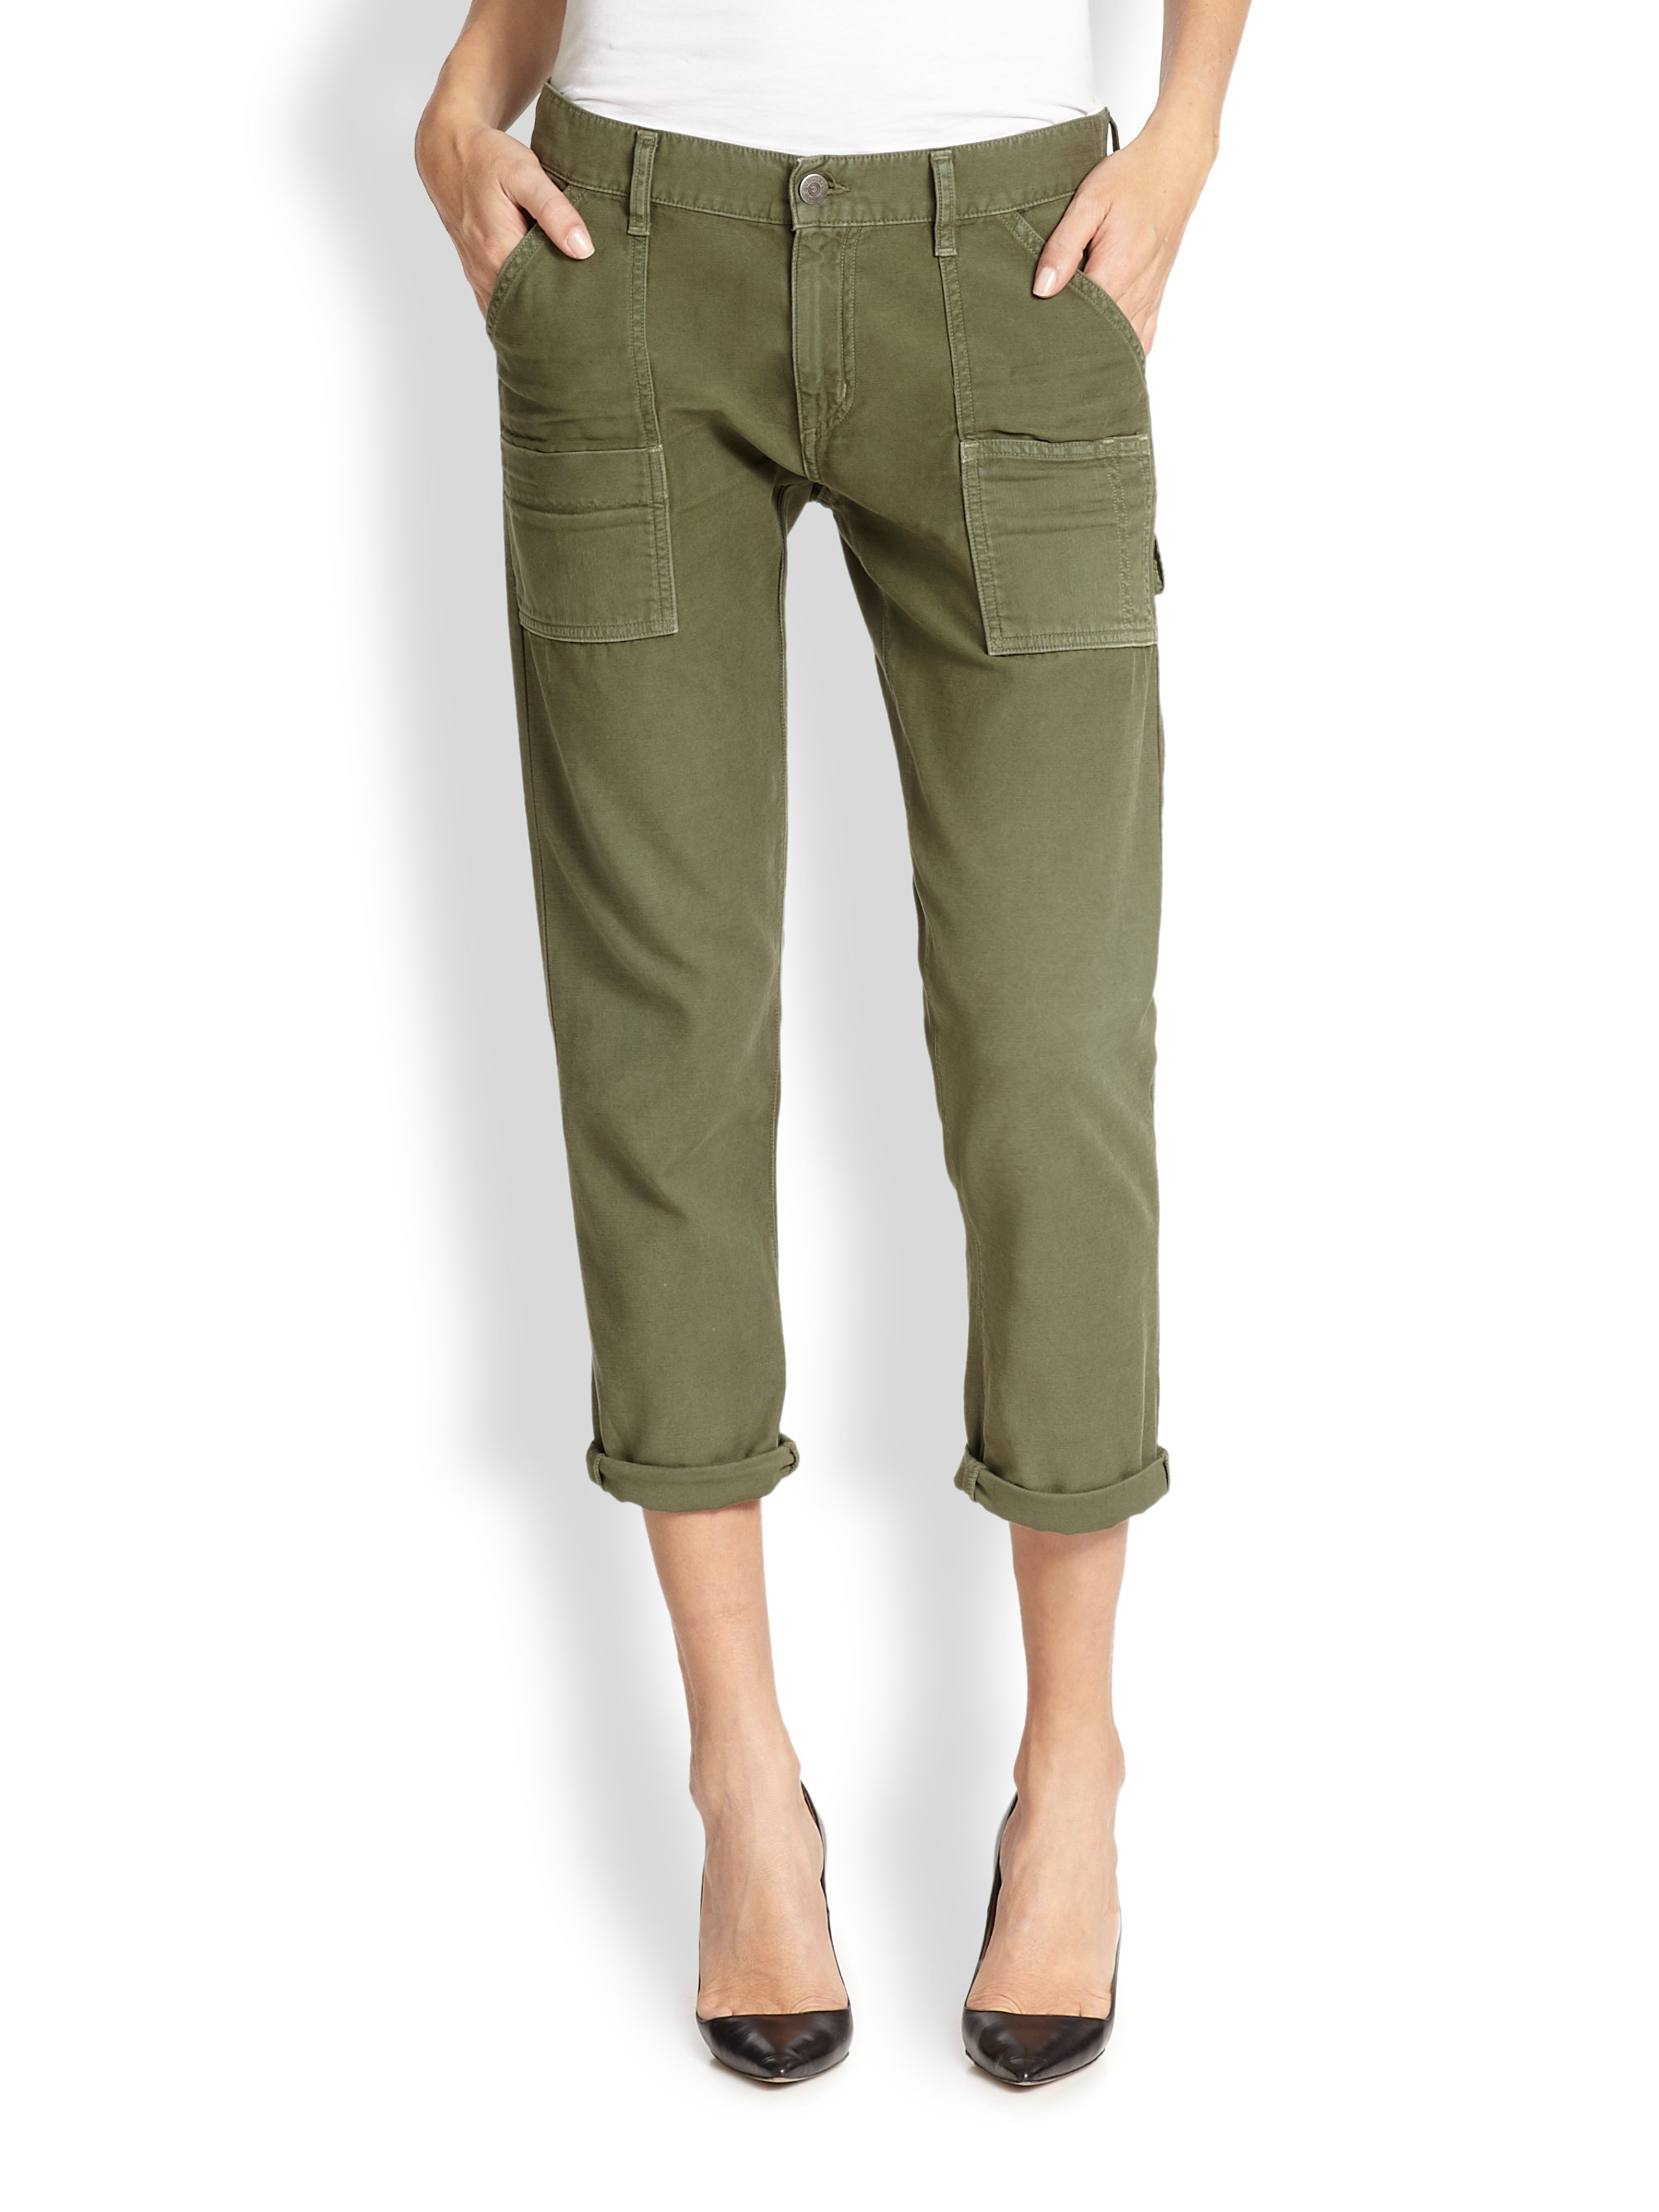 Creative Tommy Hilfiger Womens Cargo Cropped Capri Pants 12 Jeans 100 Cotton